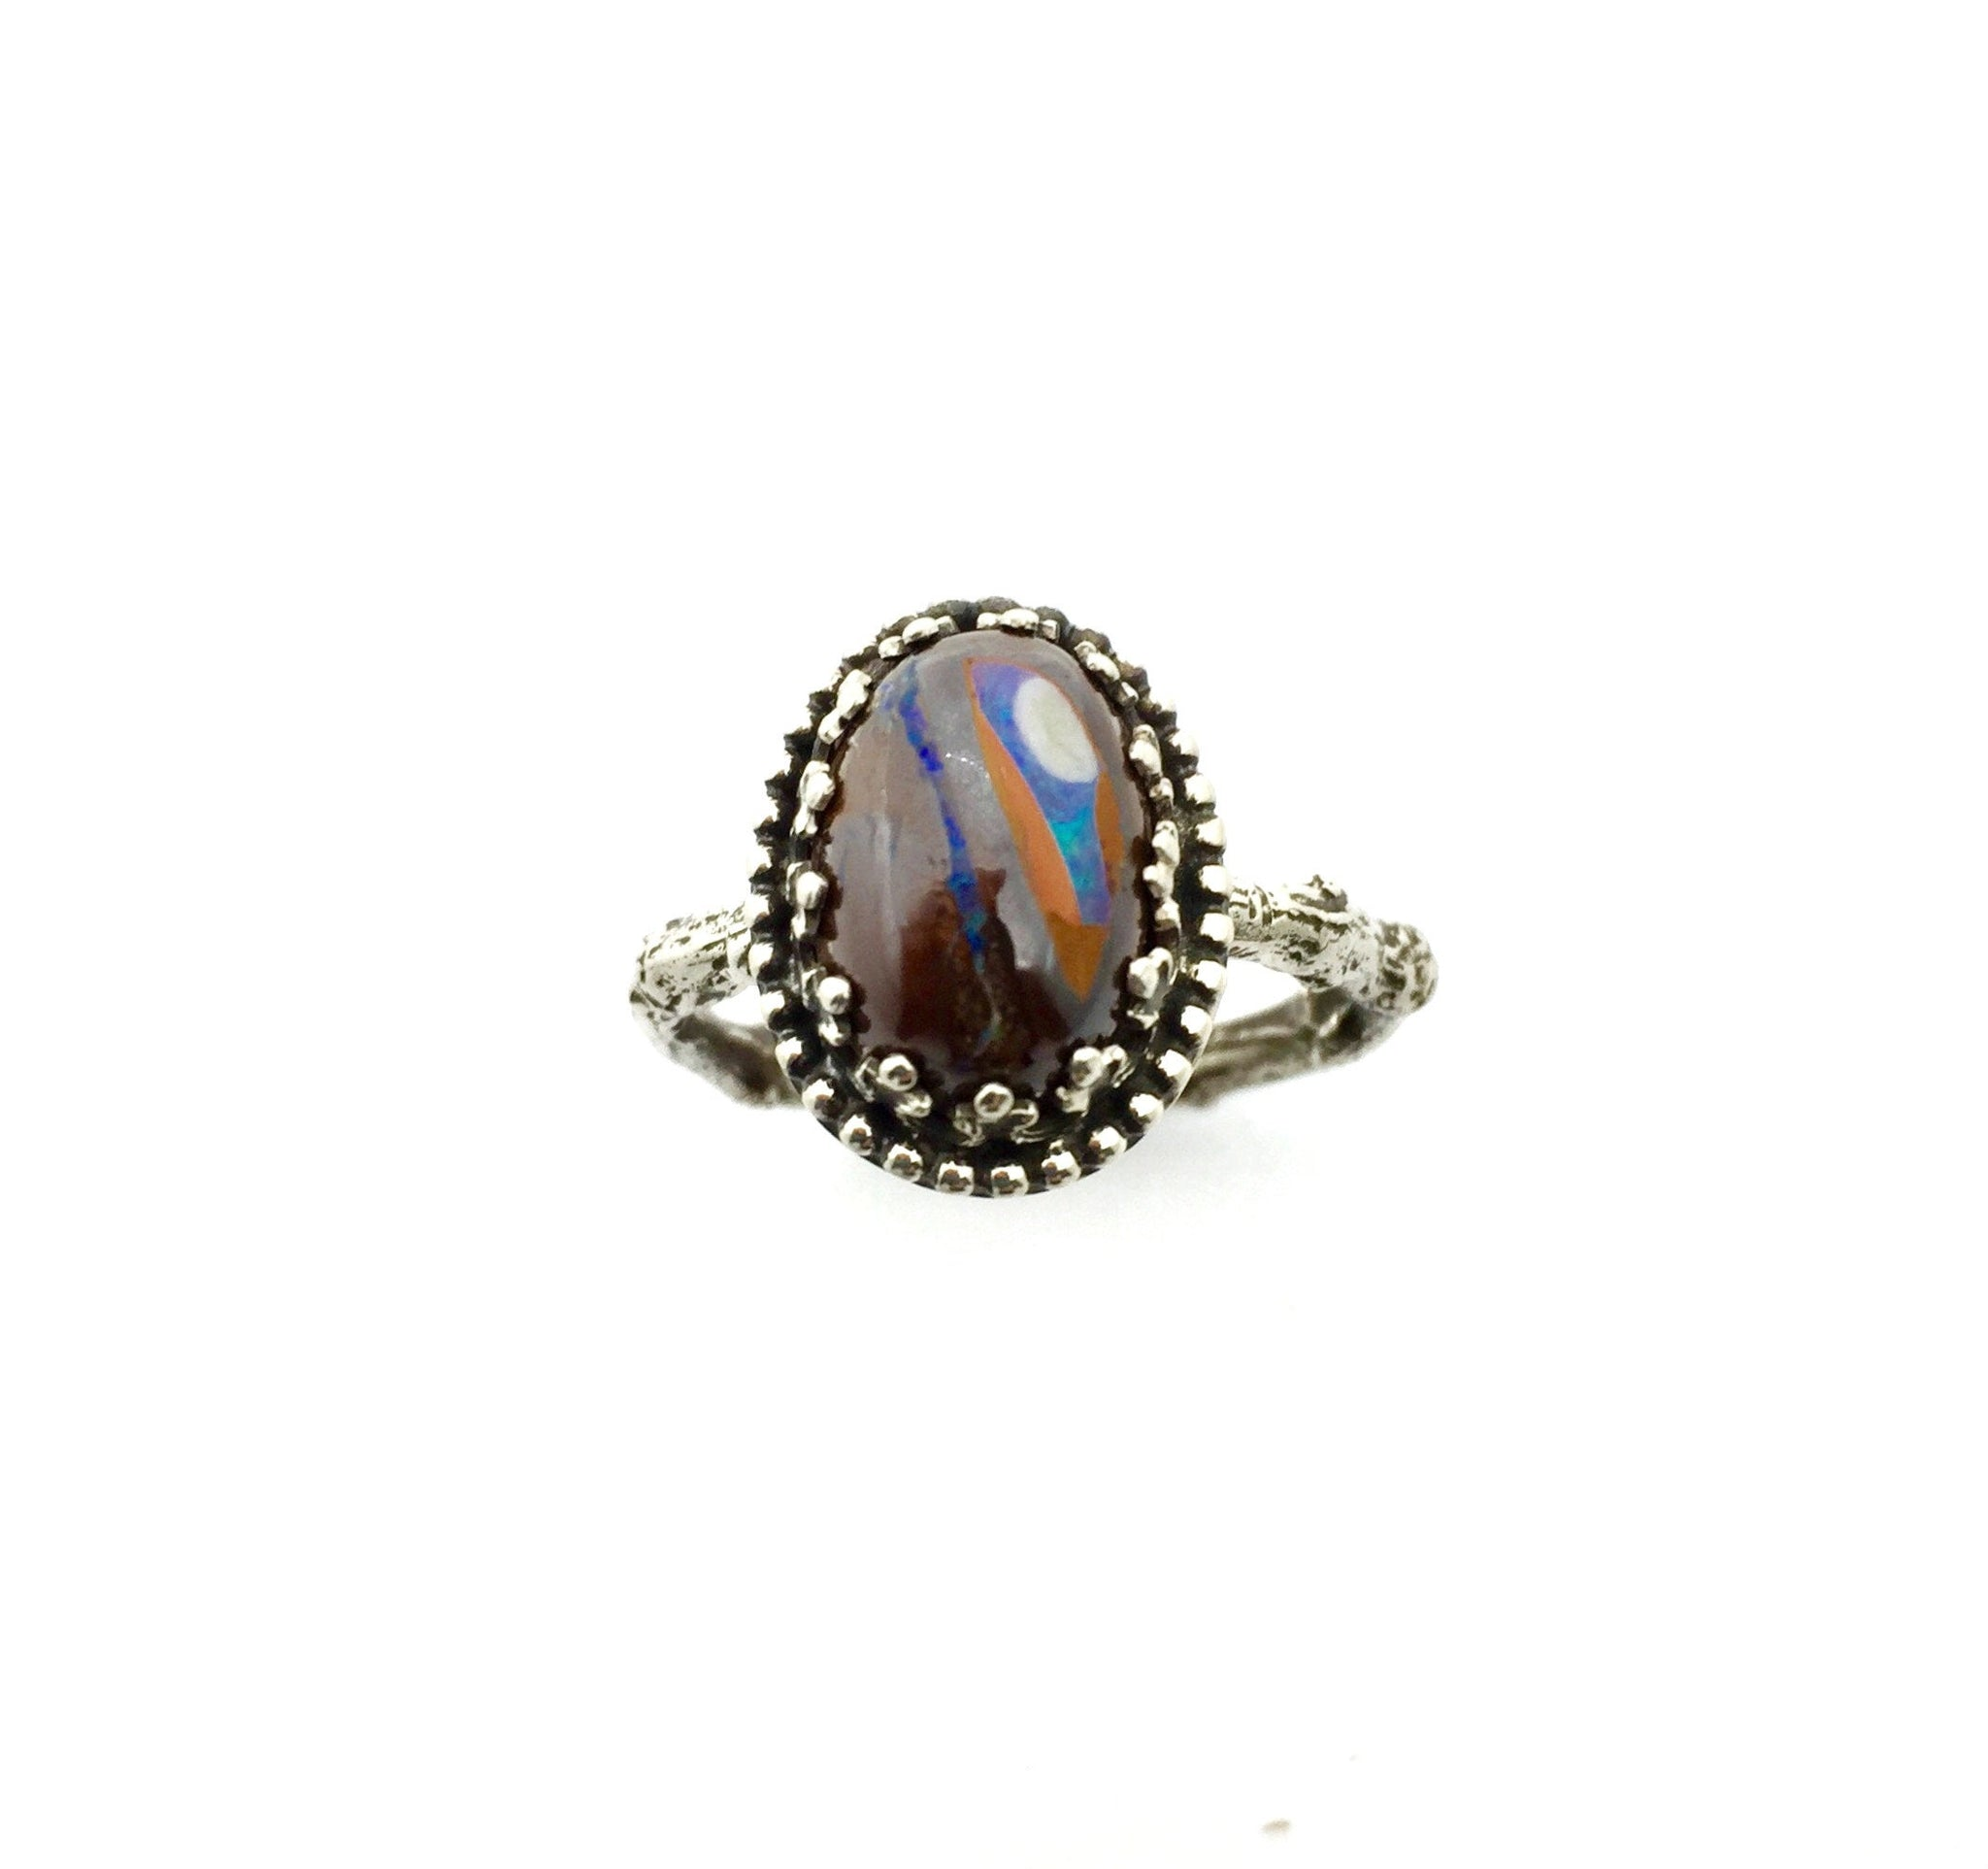 Opal Ring, Koroit Opal Ring, Opal and Sterling Ring, OOAK Opal Ring, Australian Opal Ring, Opal Statement Ring